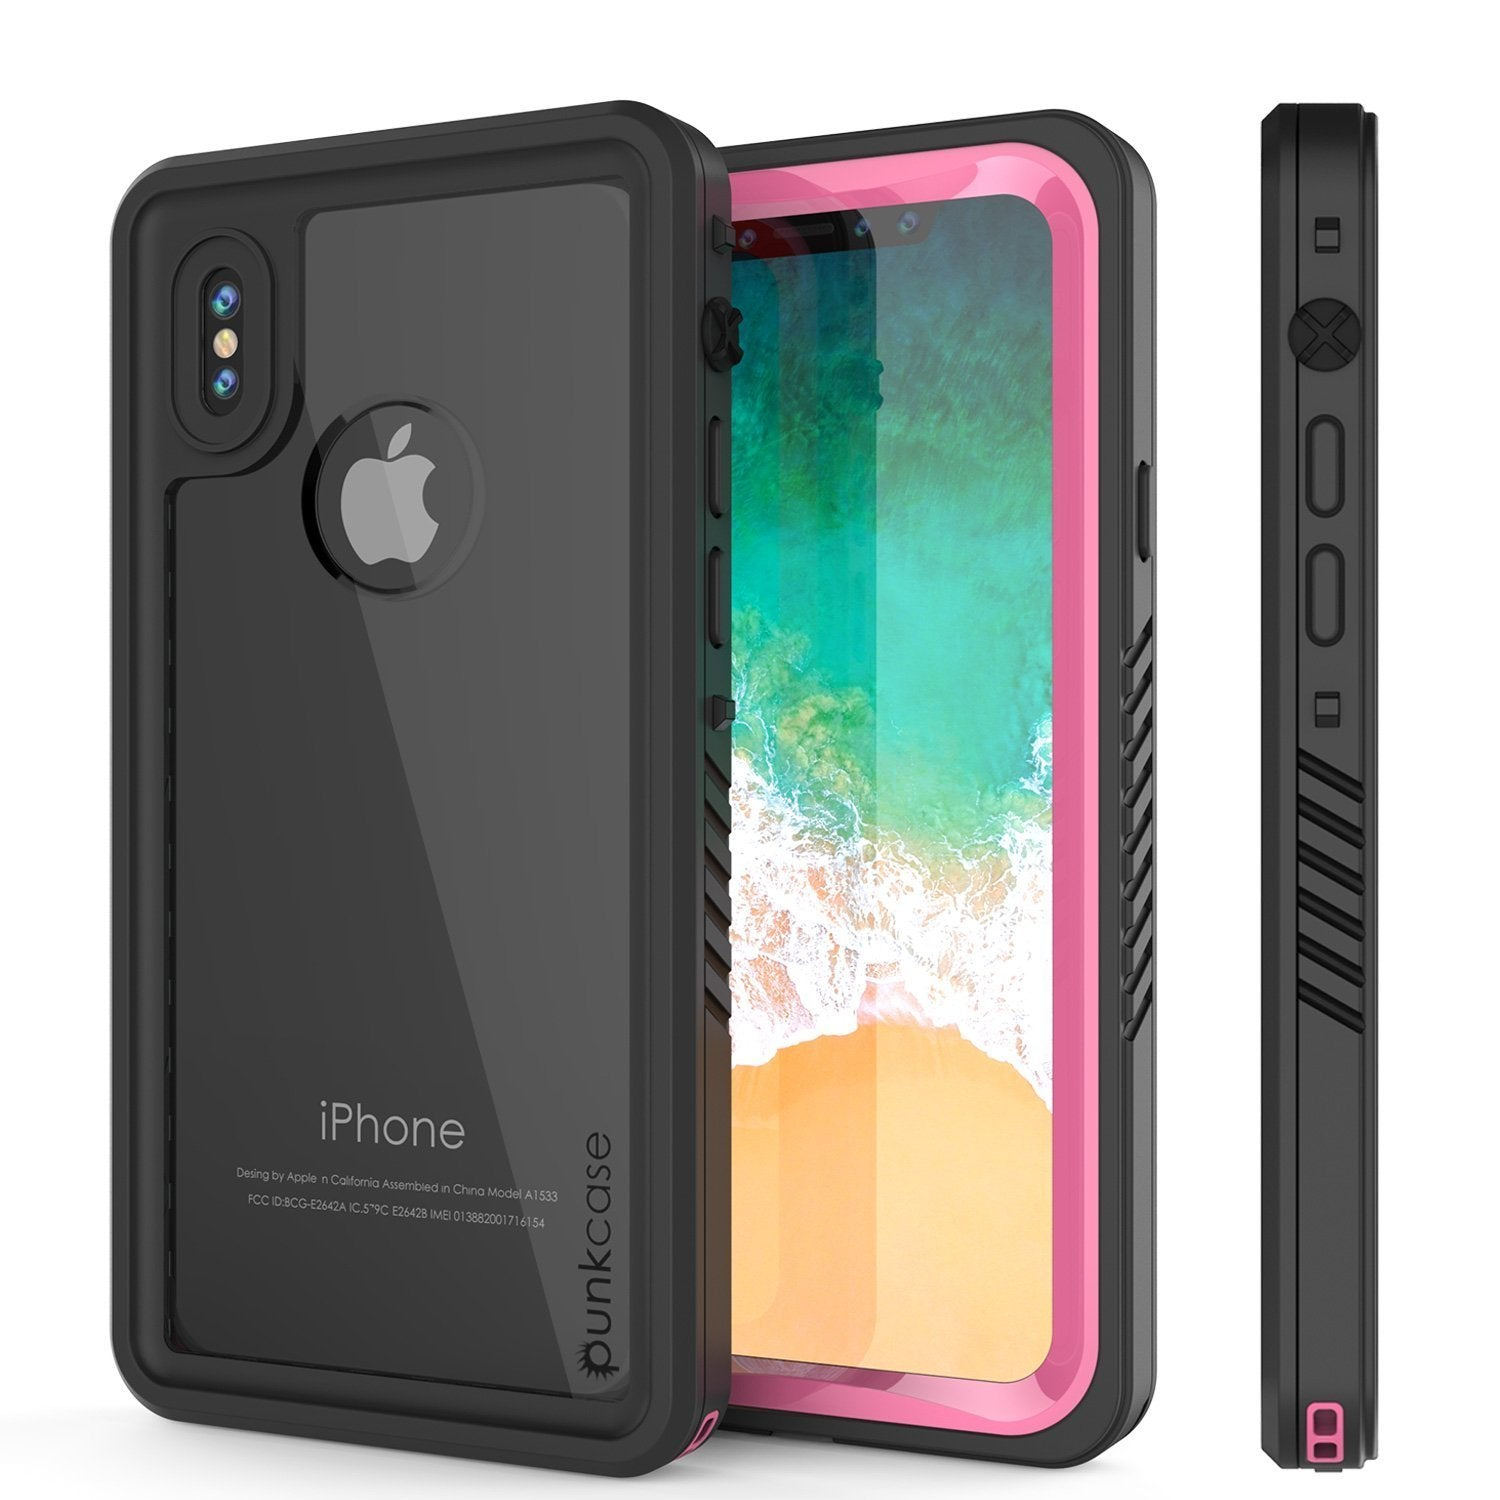 iPhone XS Max Waterproof Case, Punkcase [Extreme Series] Armor Cover W/ Built In Screen Protector [Pink]